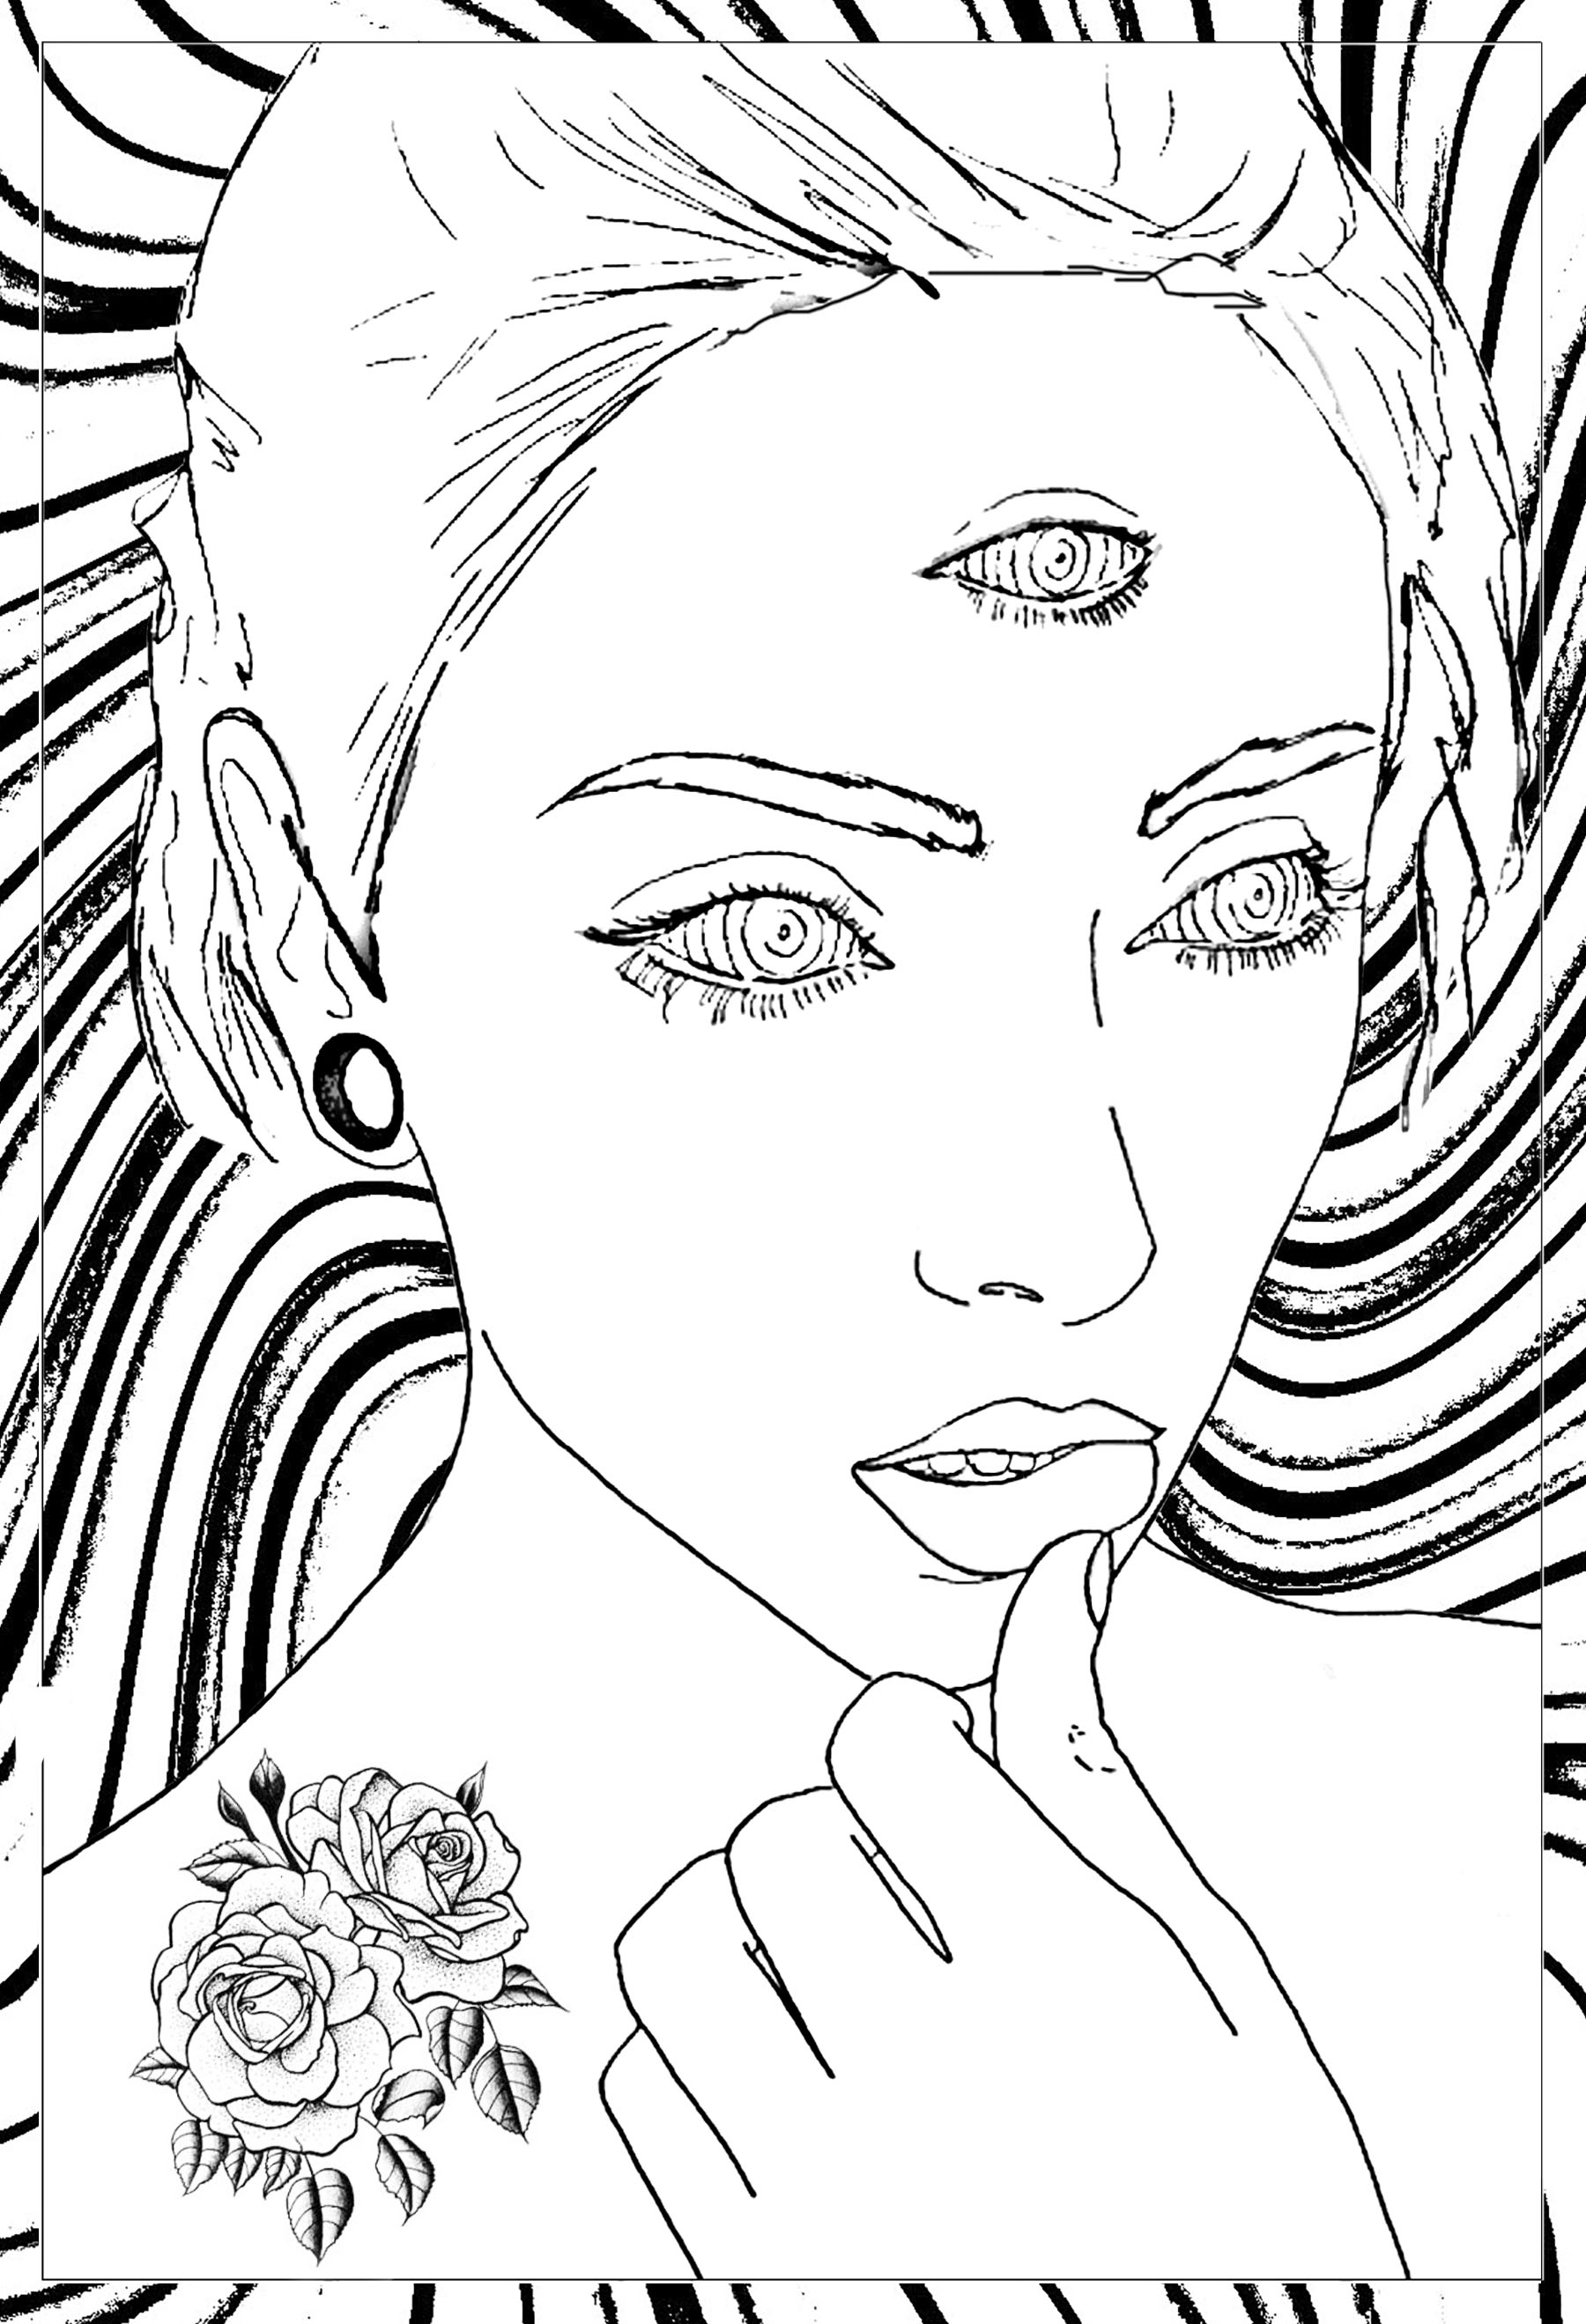 Thoughtful Woman Psychedelic Coloring Pages For Adults Justcolor Coloring Pages For Adults